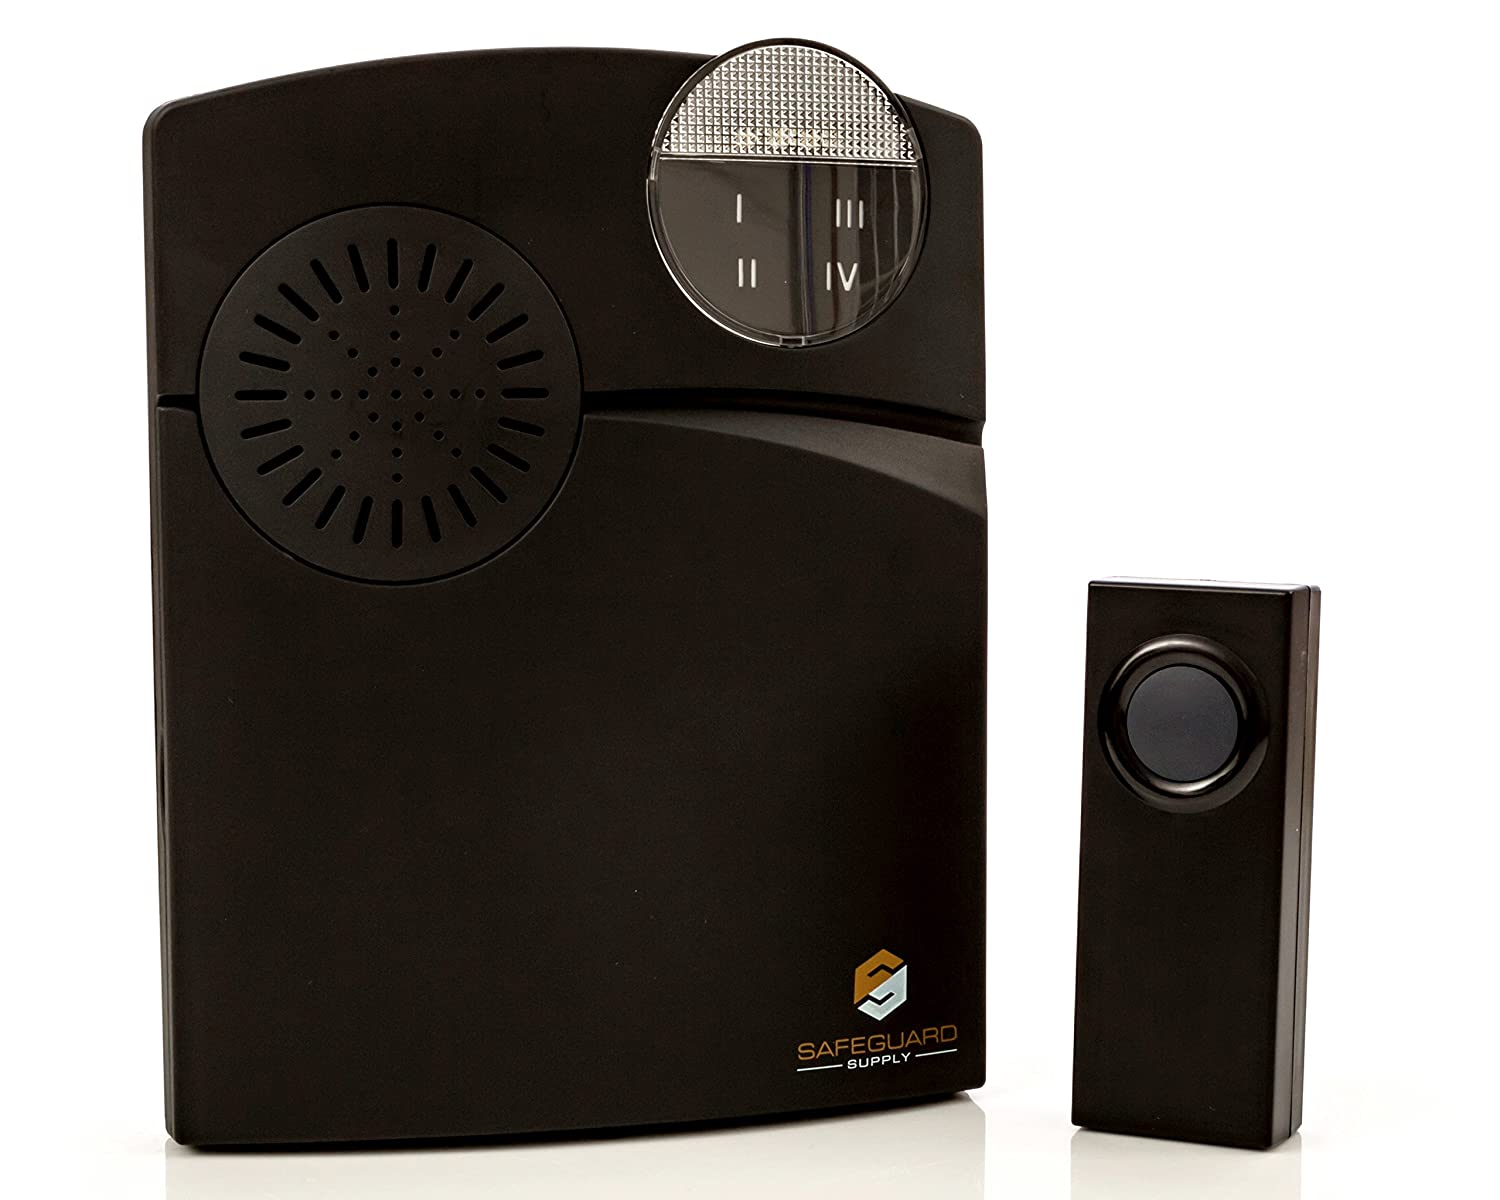 Wireless Doorbell - Long Range Wireless Doorbell 1000' Range - Wireless Doorbell System with Flashing Light for The Hearing Impaired